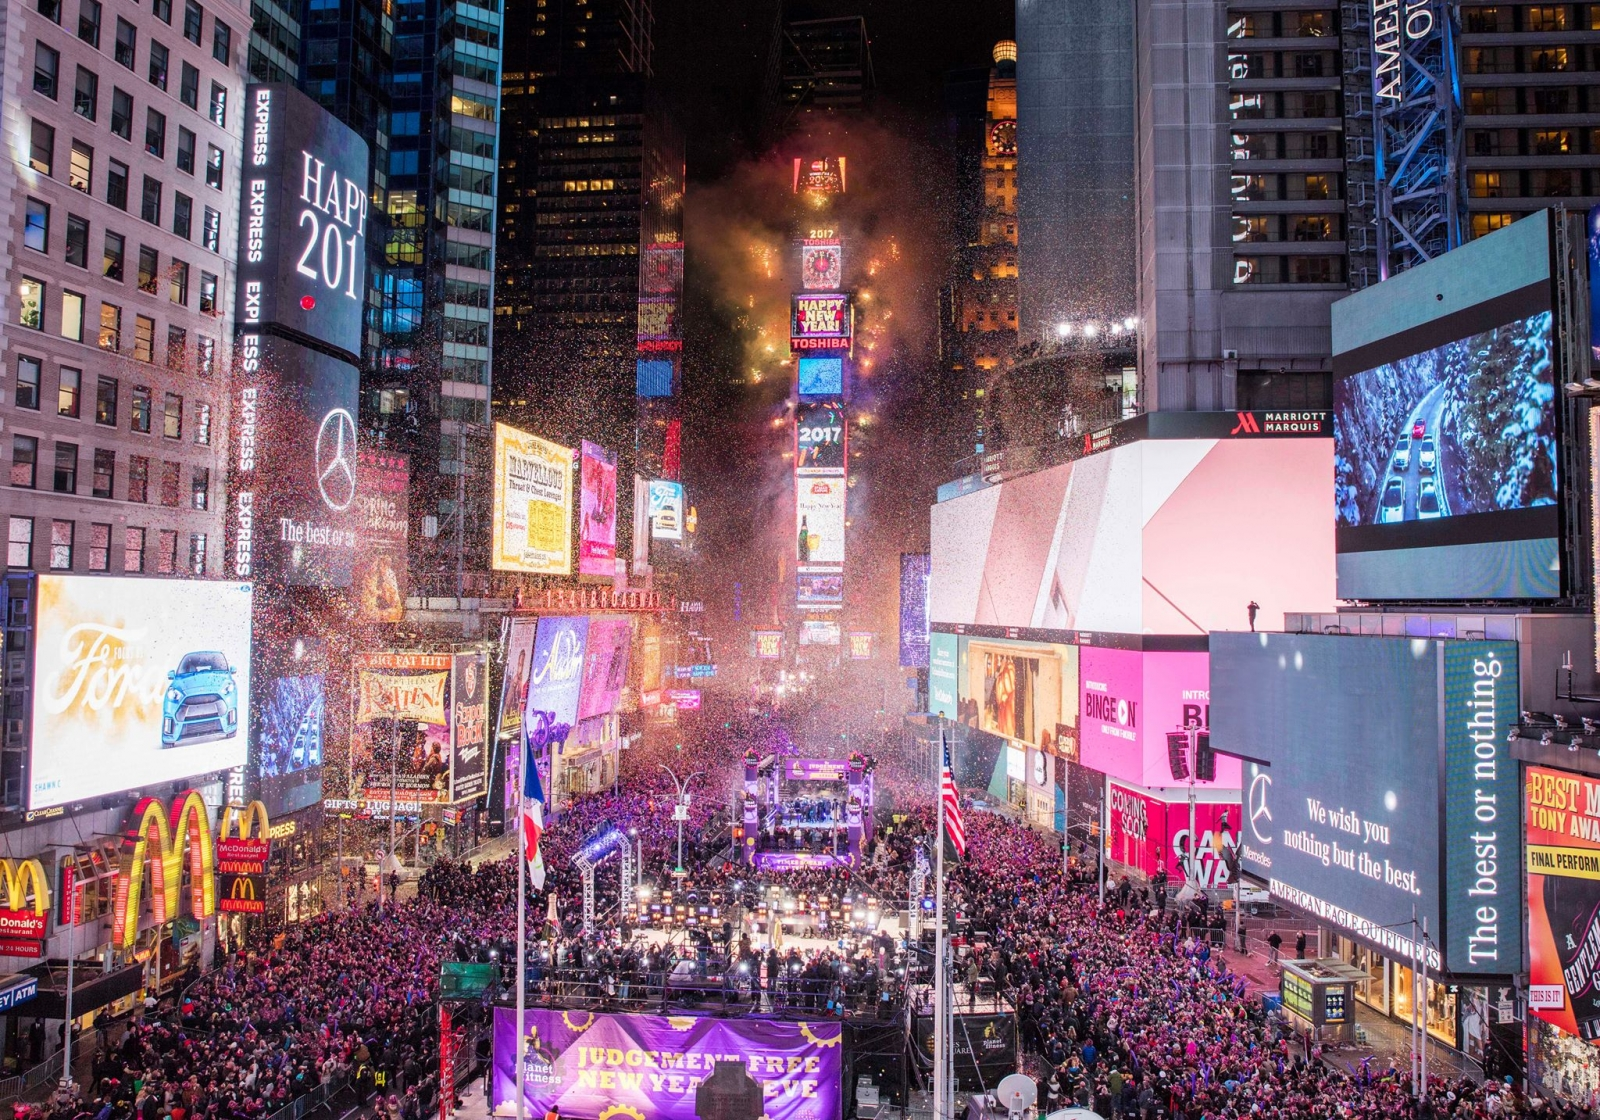 New Year's Eve And No Plans Here's What You Need to Know 9 New Year's Eve New Year's Eve And No Plans? Here's What You Need to Know New Years Eve And No Plans Heres What You Need to Know 9